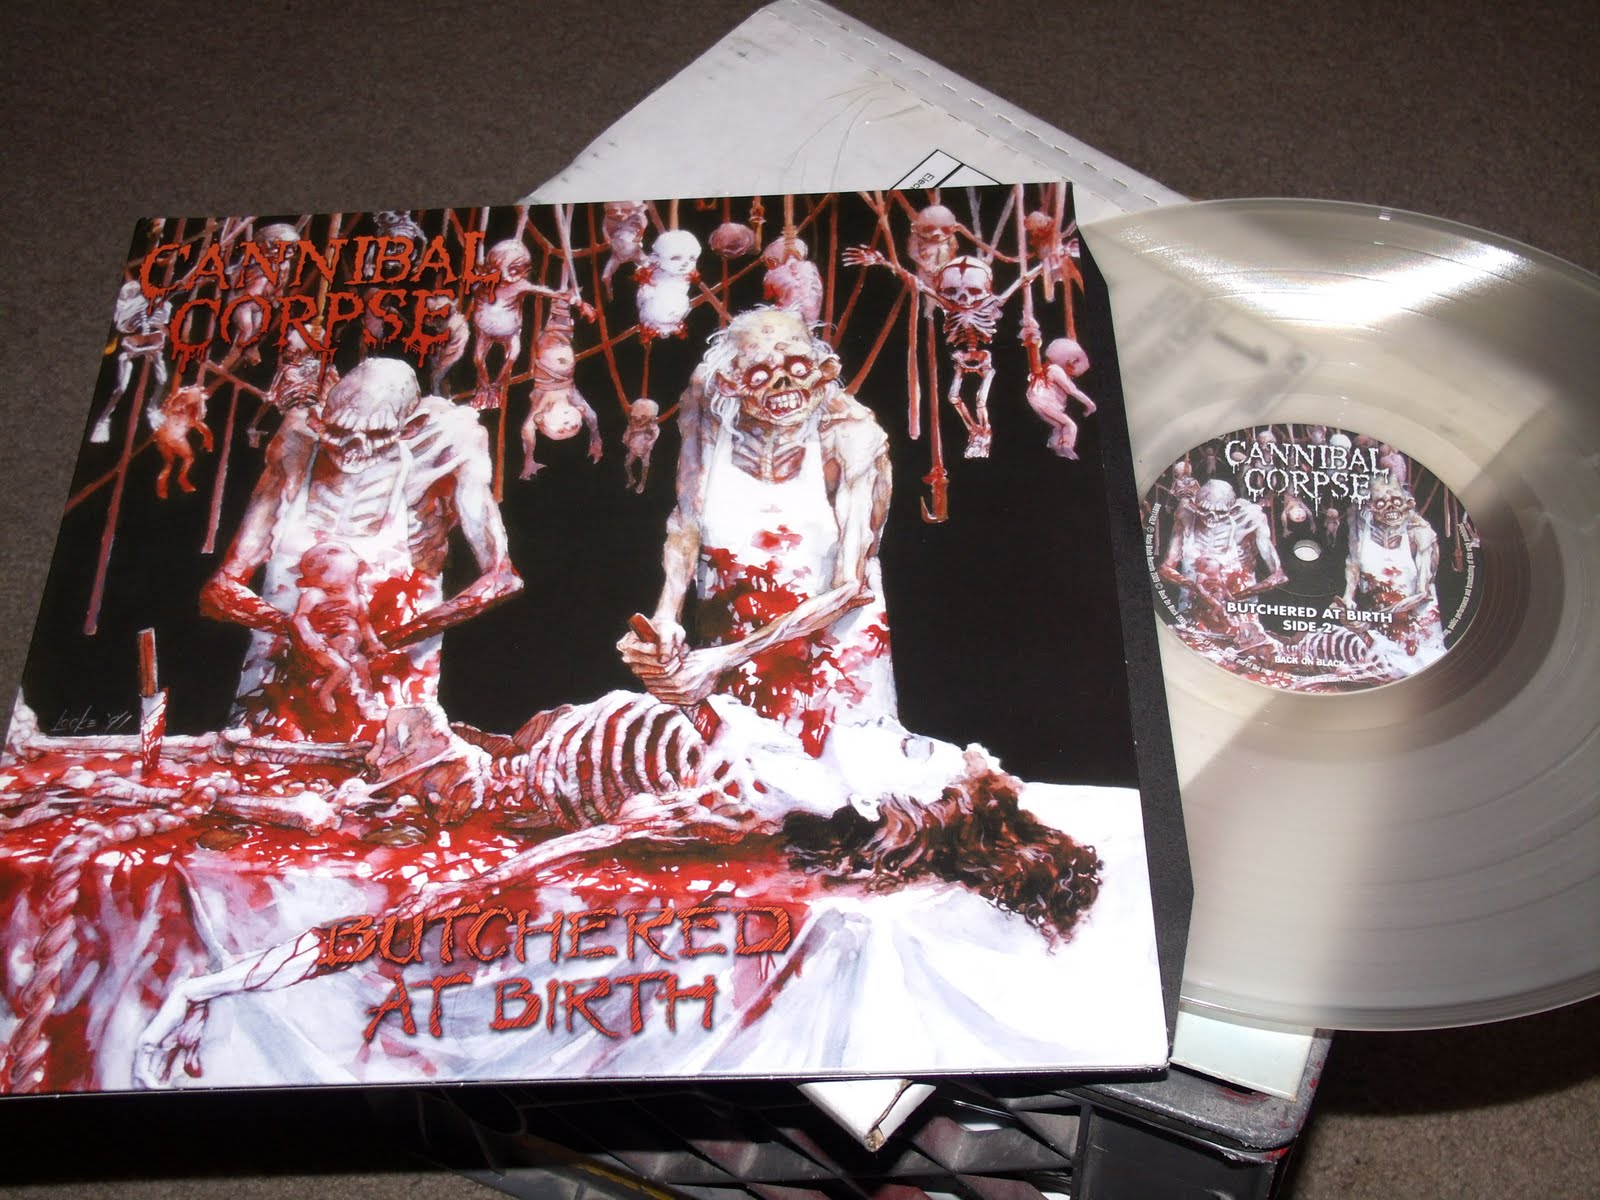 The Emerging Addiction Cannibal Corpse Butchered At